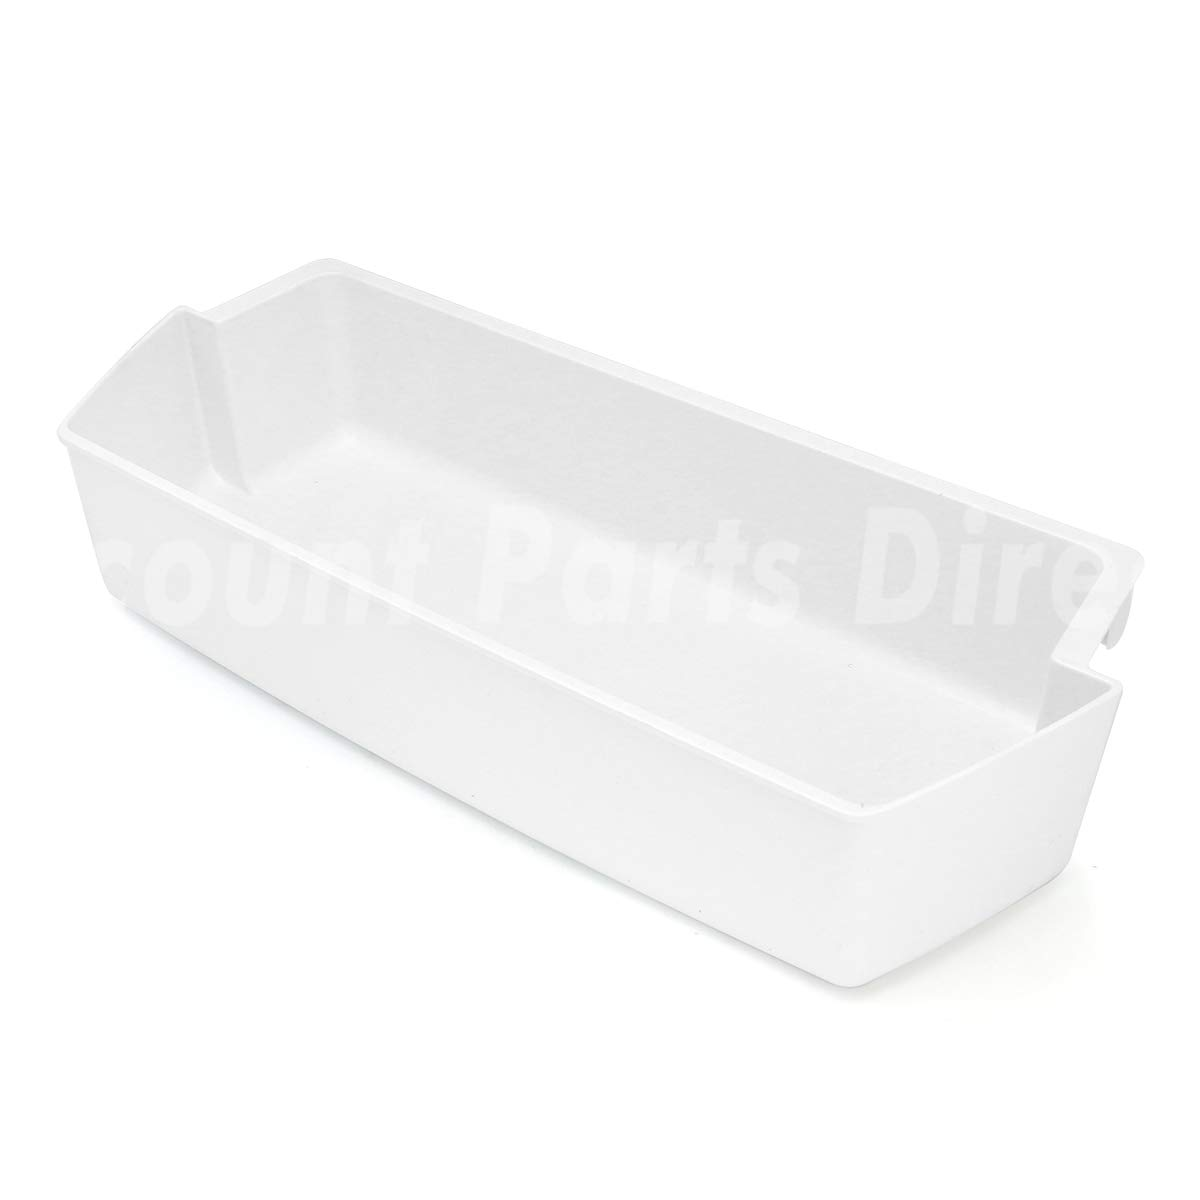 2187172 Door Shelf Bin for Whirlpool for Frigidaire Whirlpool Kenmore Refrigerator PS328468